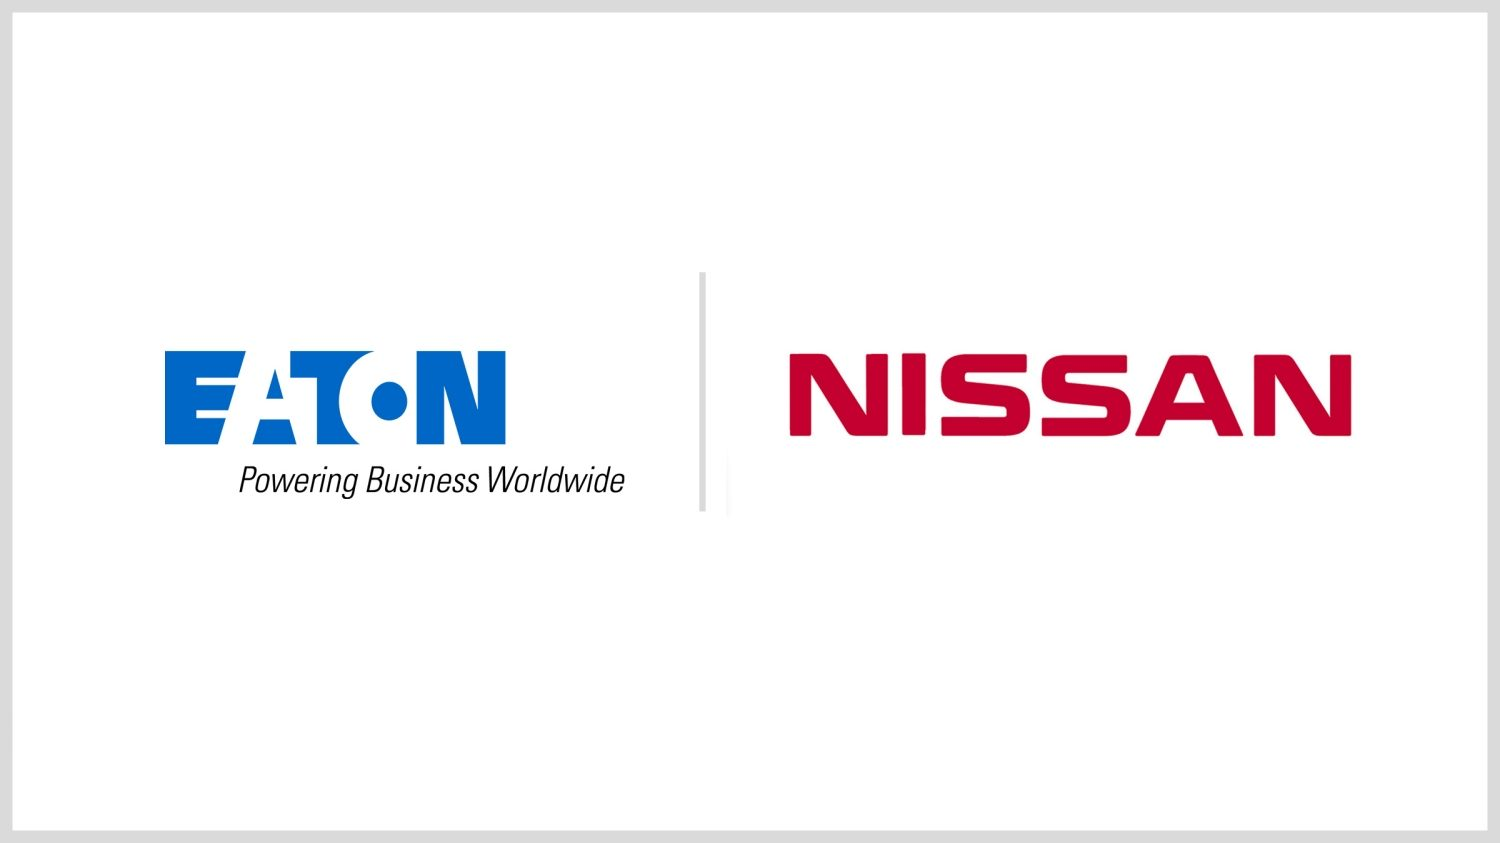 Eaton and Nissan collaboration